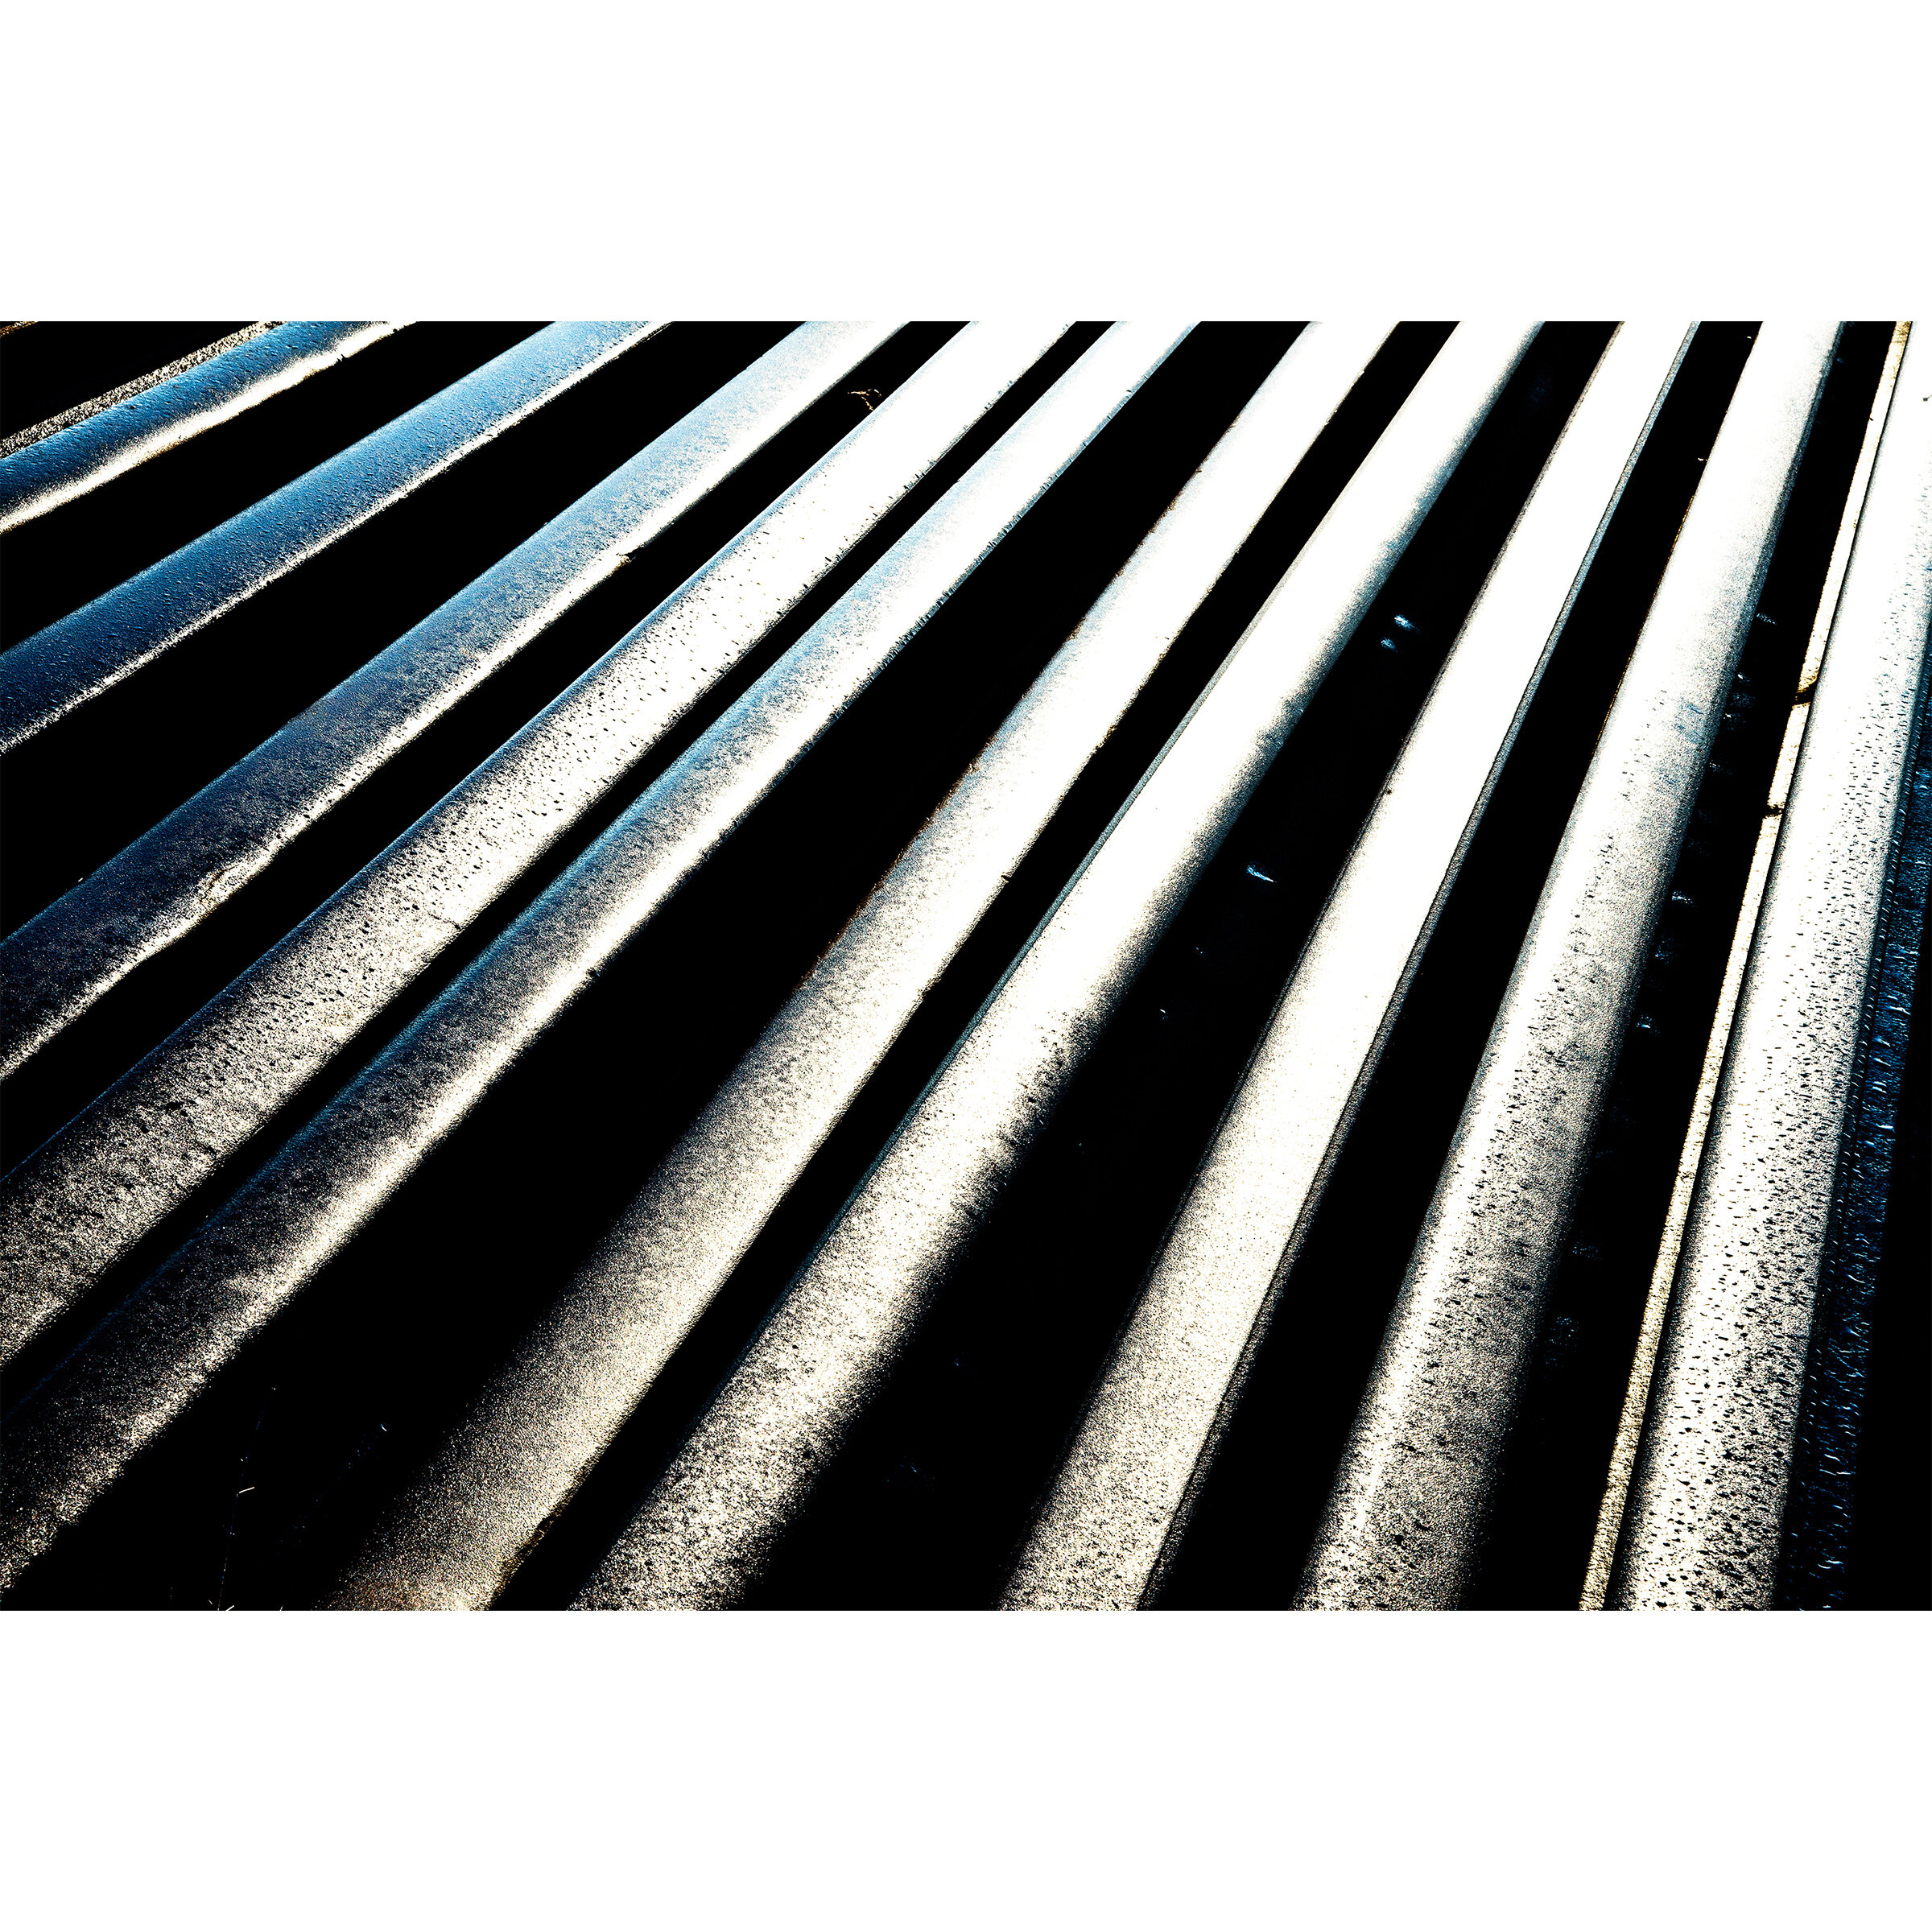 Abstract photography with strong contract of straight lighting with the dark black background.